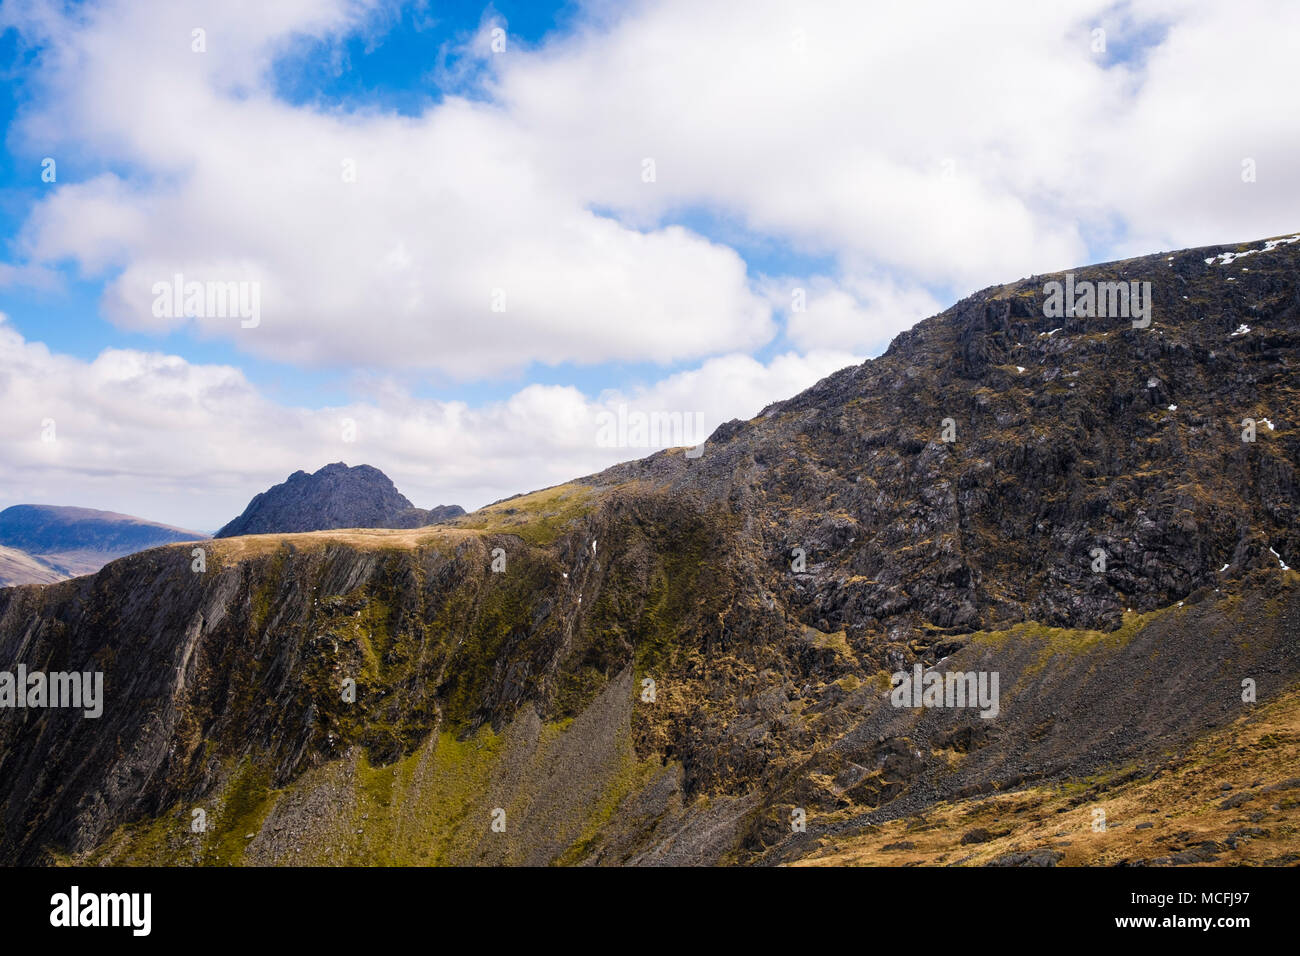 Y Gribbin Ridge route scramble leading to Glyderau in Snowdonia National Park. Ogwen, North Wales, UK. Seen from Nameless Cwm / Cneifion on west side - Stock Image